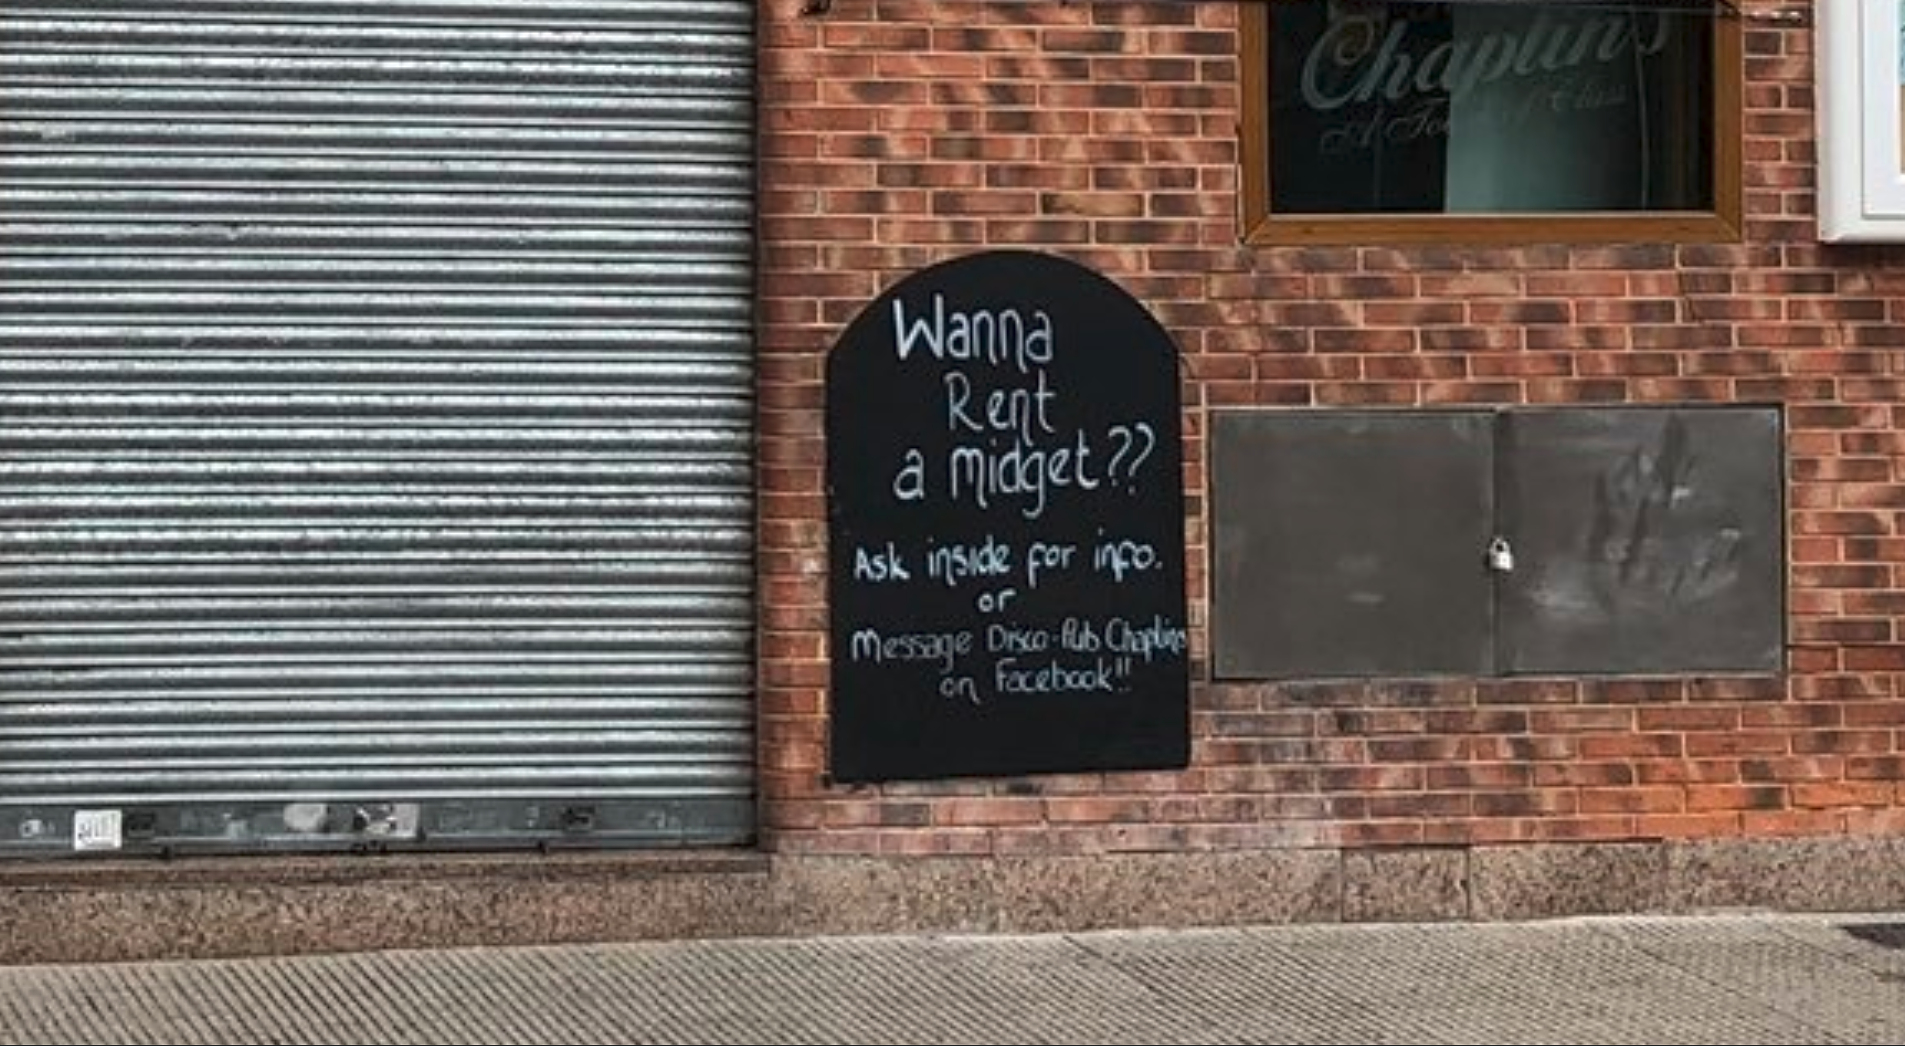 Chaplin's has also been slammed for renting out 'midgets' to customers.